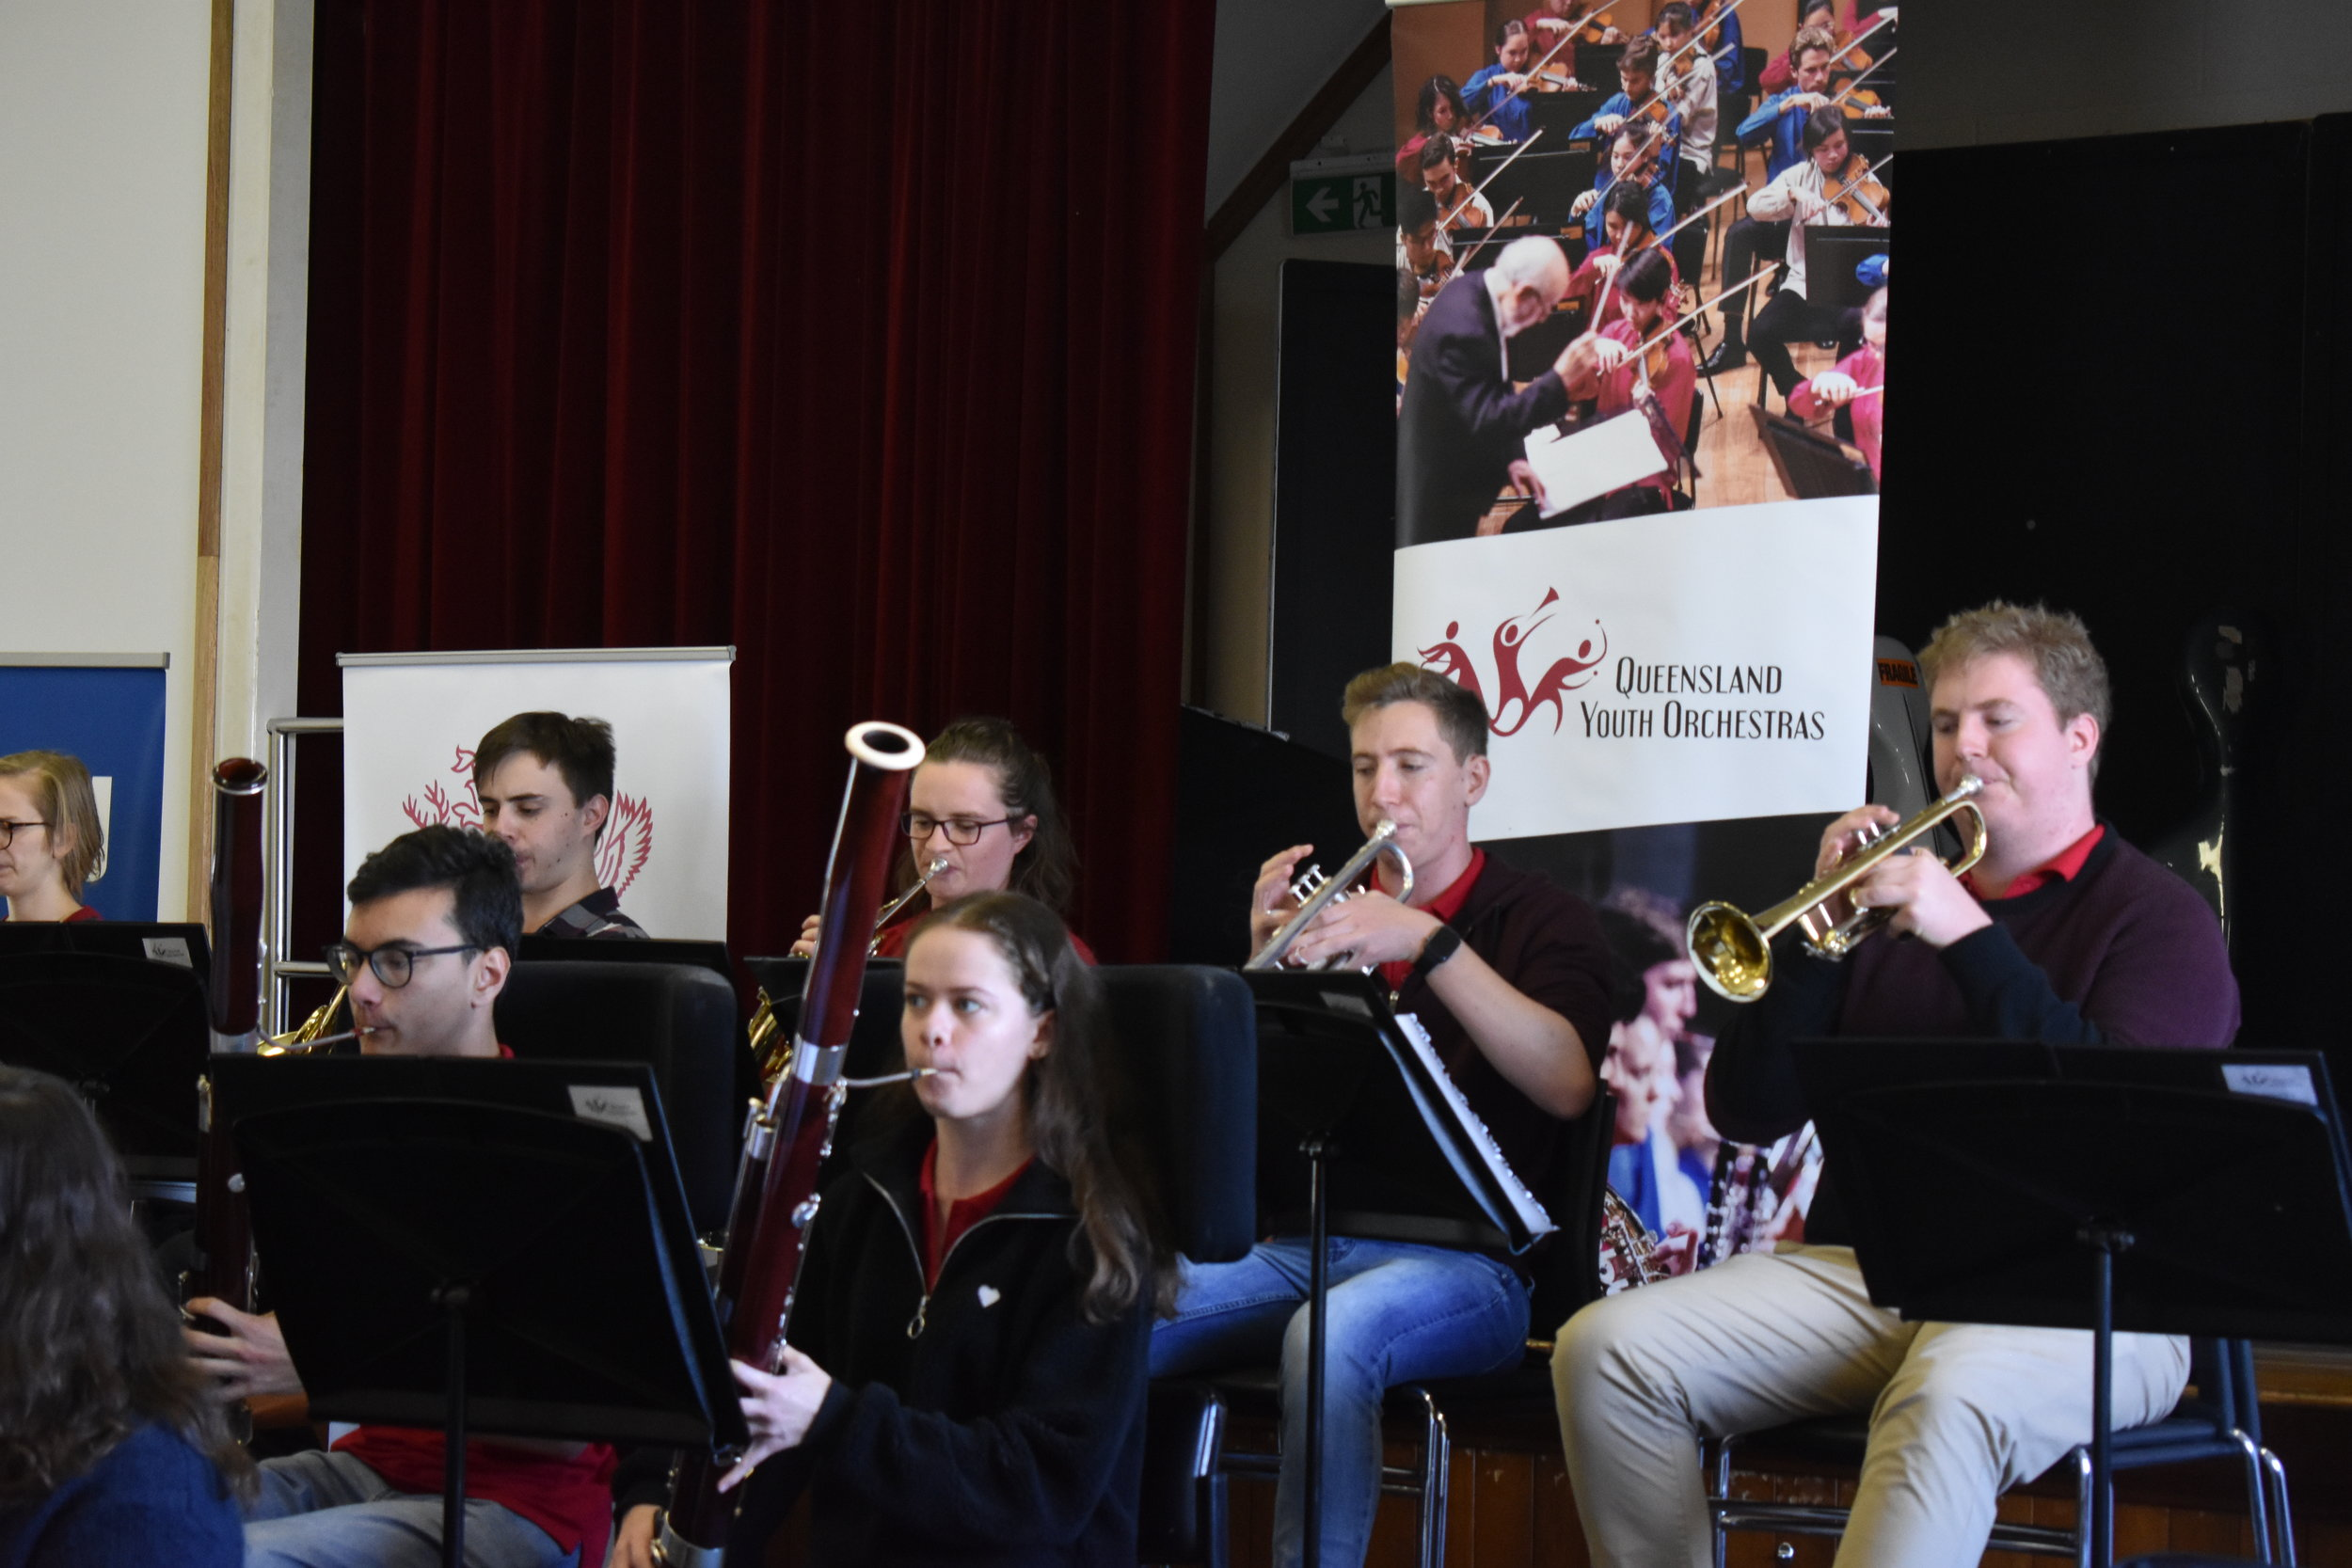 Regional Tour Blog 6: Nebo concert — Queensland Youth Orchestras